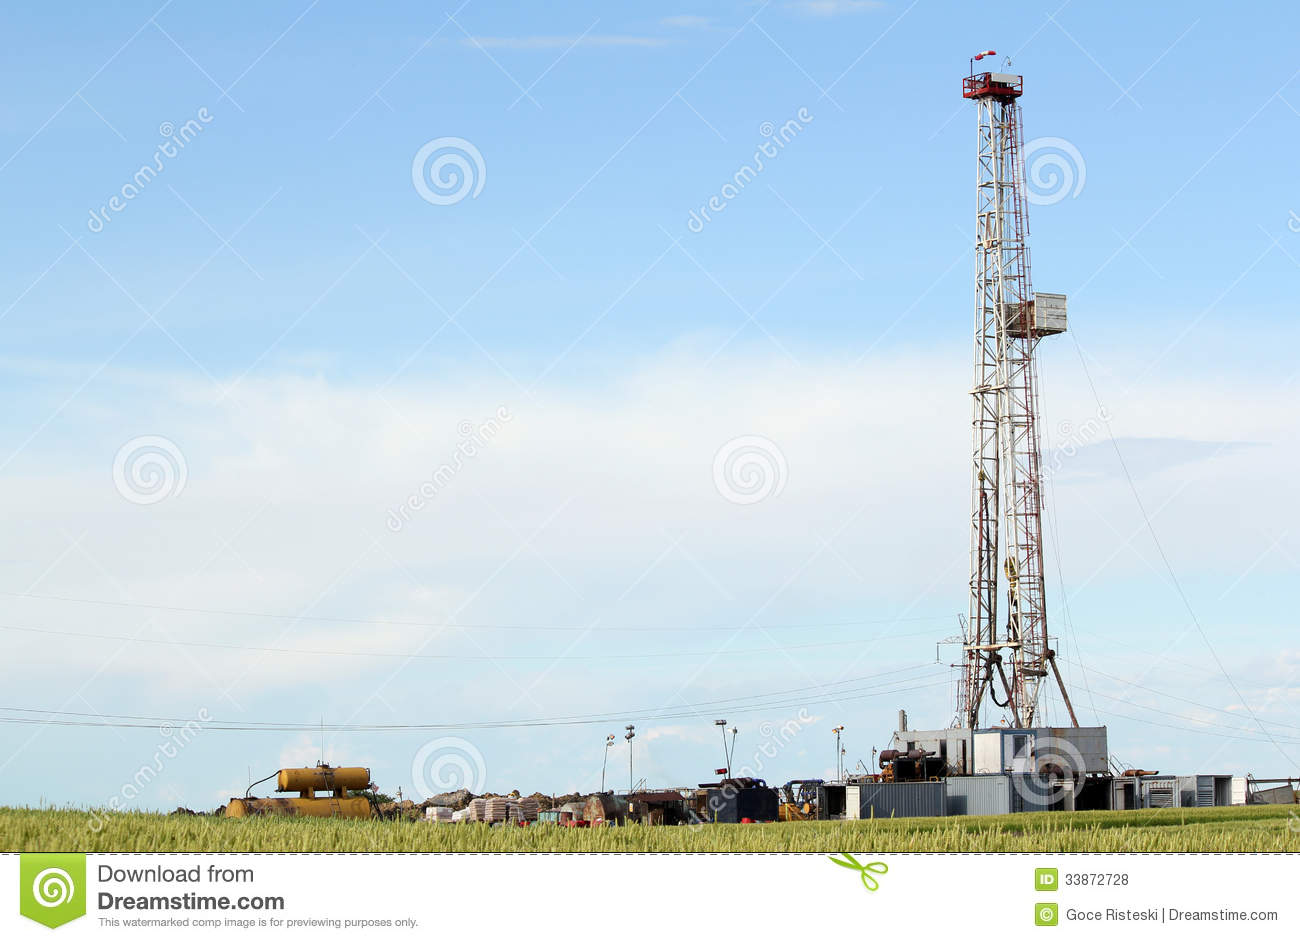 Land Oil Drilling Rig Royalty Free Stock Photos   Image  33872728